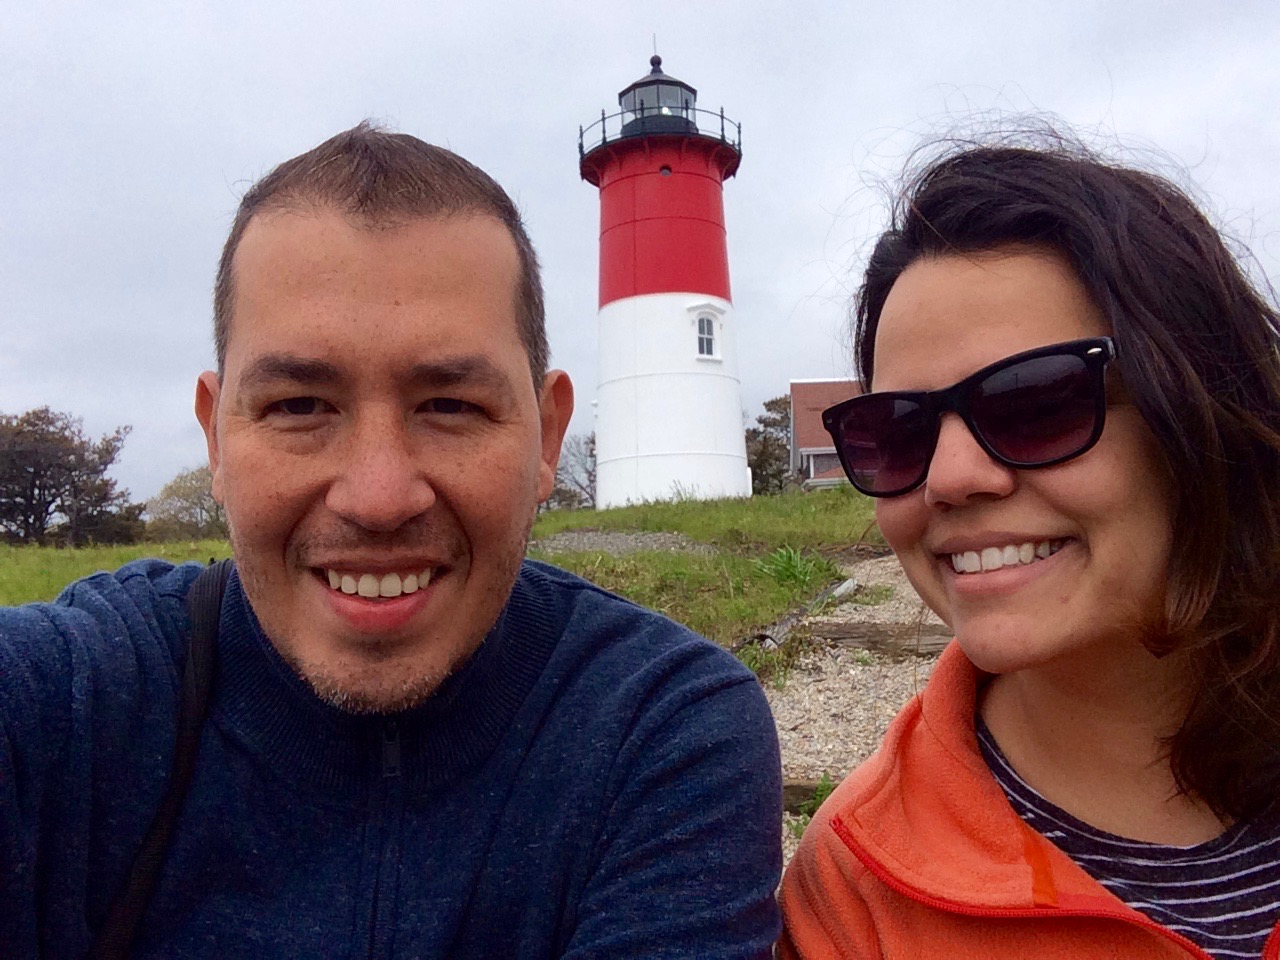 Cruising the East Coast: Beginning our Cross Country Adventure